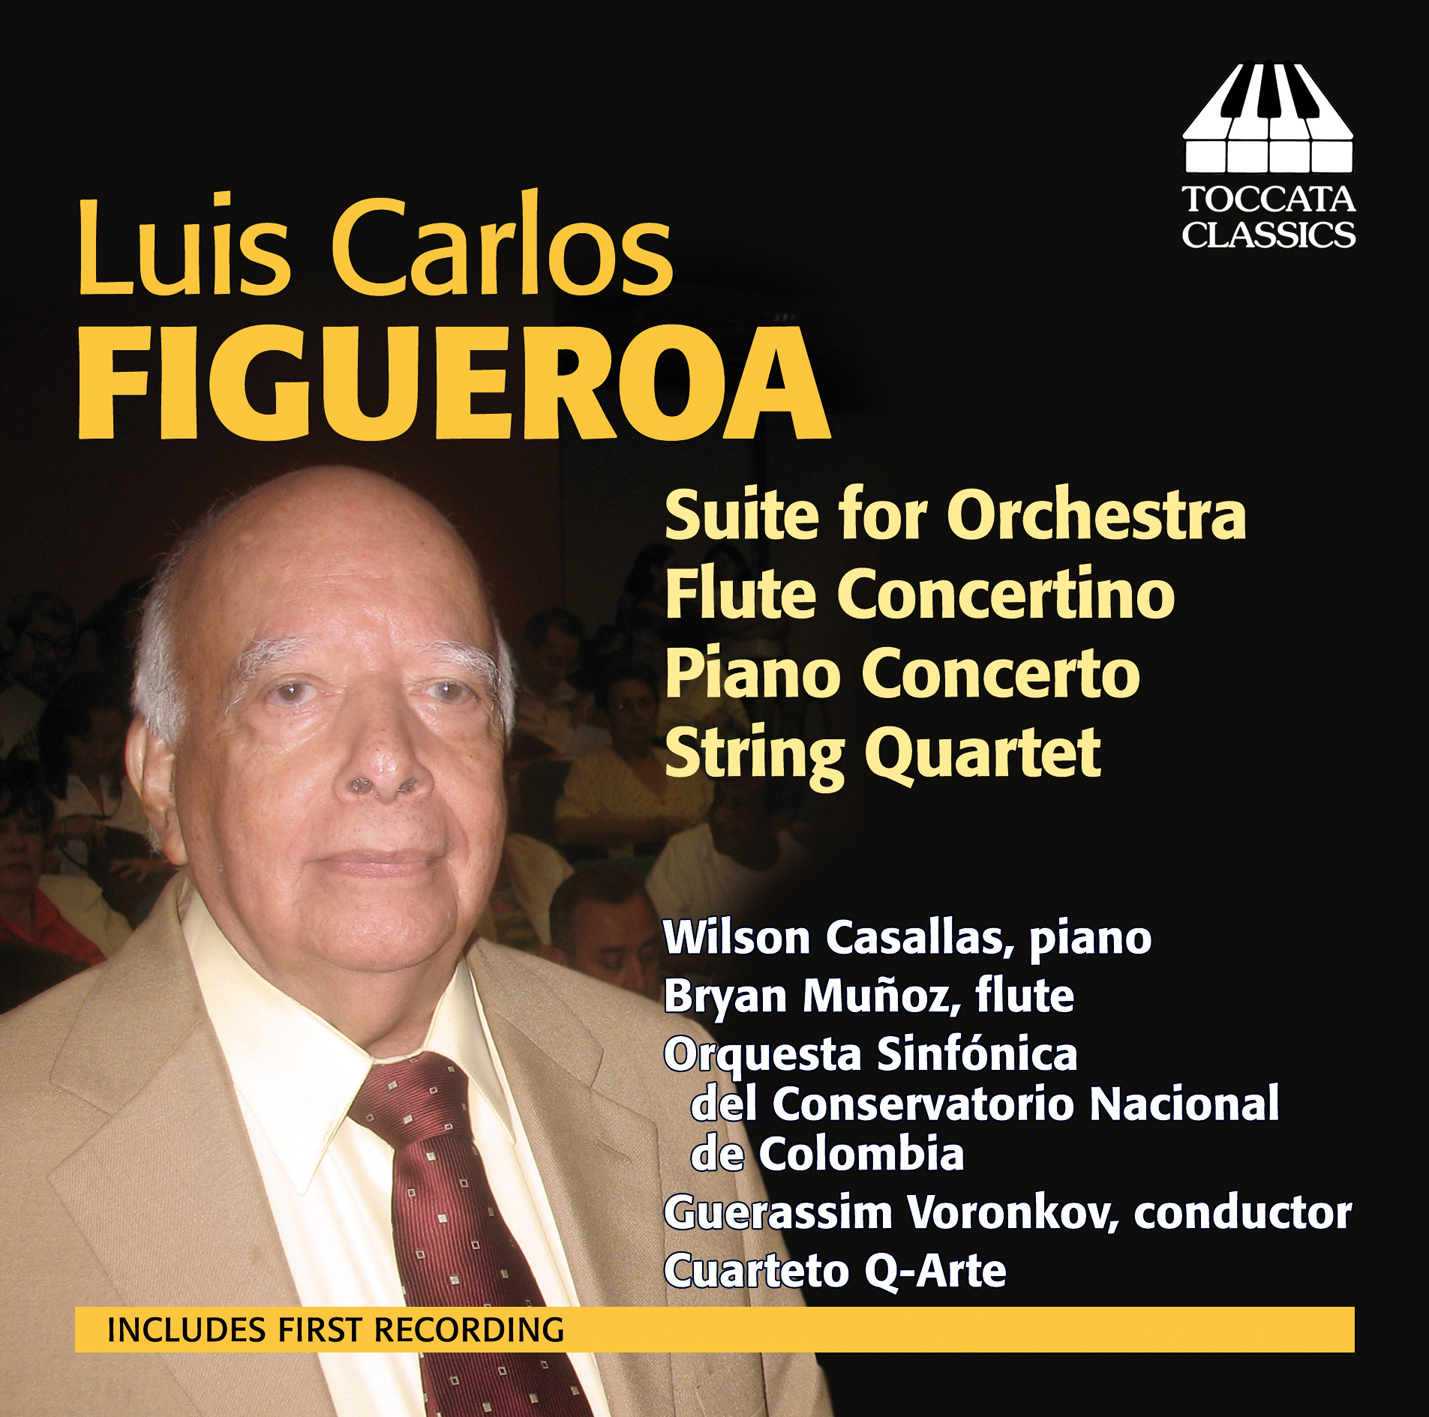 Concertino for Flute, String Orchestra and Timpani, Concertino for Flute, String Orchestra and Timpani: III. Allegro